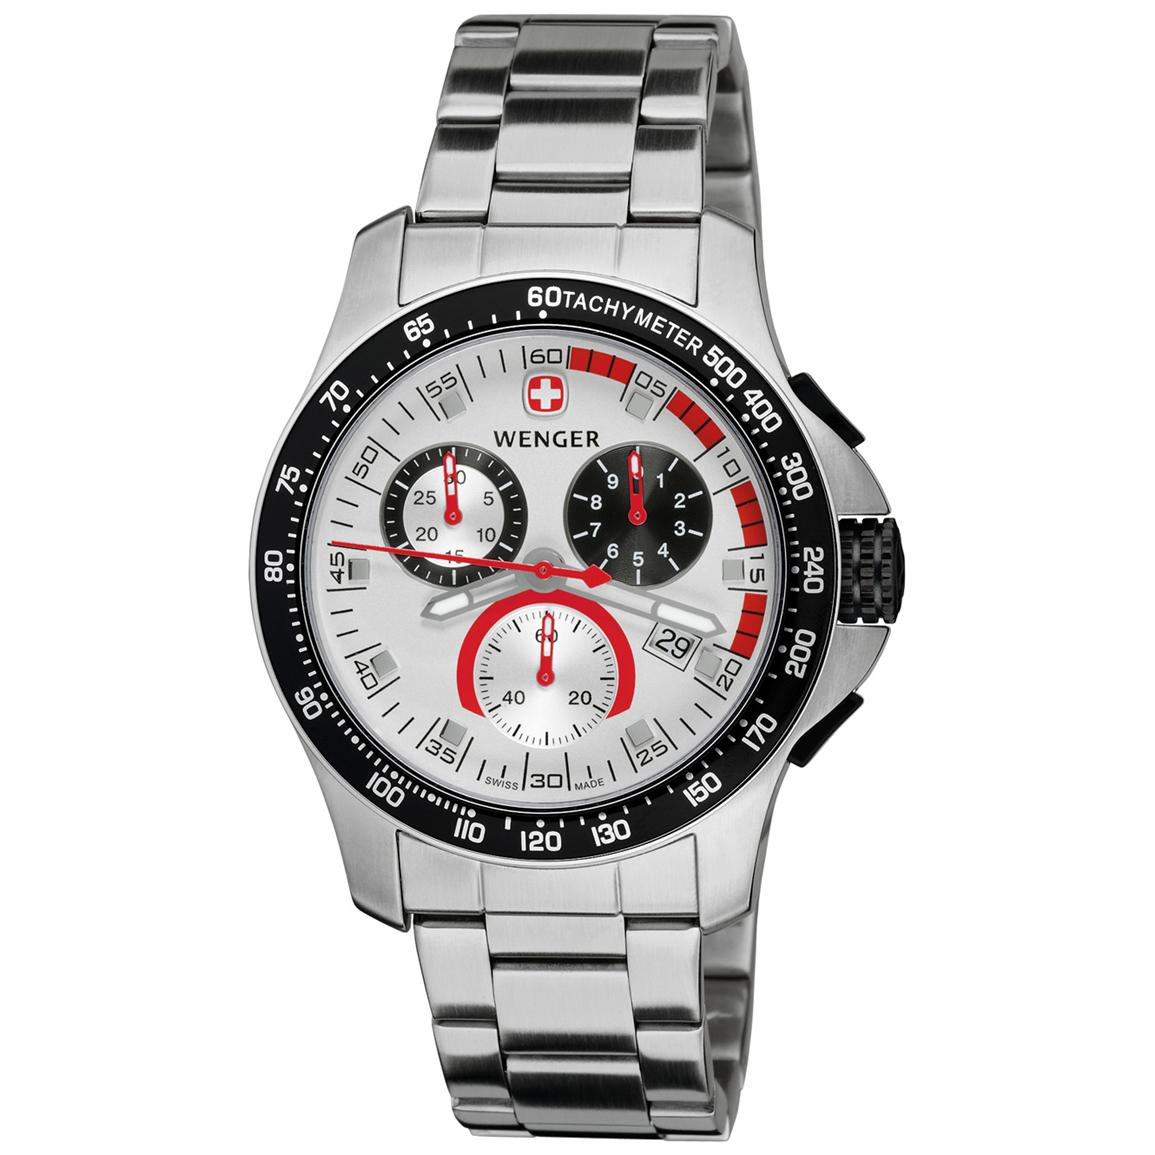 Wenger® 70797 Battalion® Field Chrono Watch with Stainless Steel Band